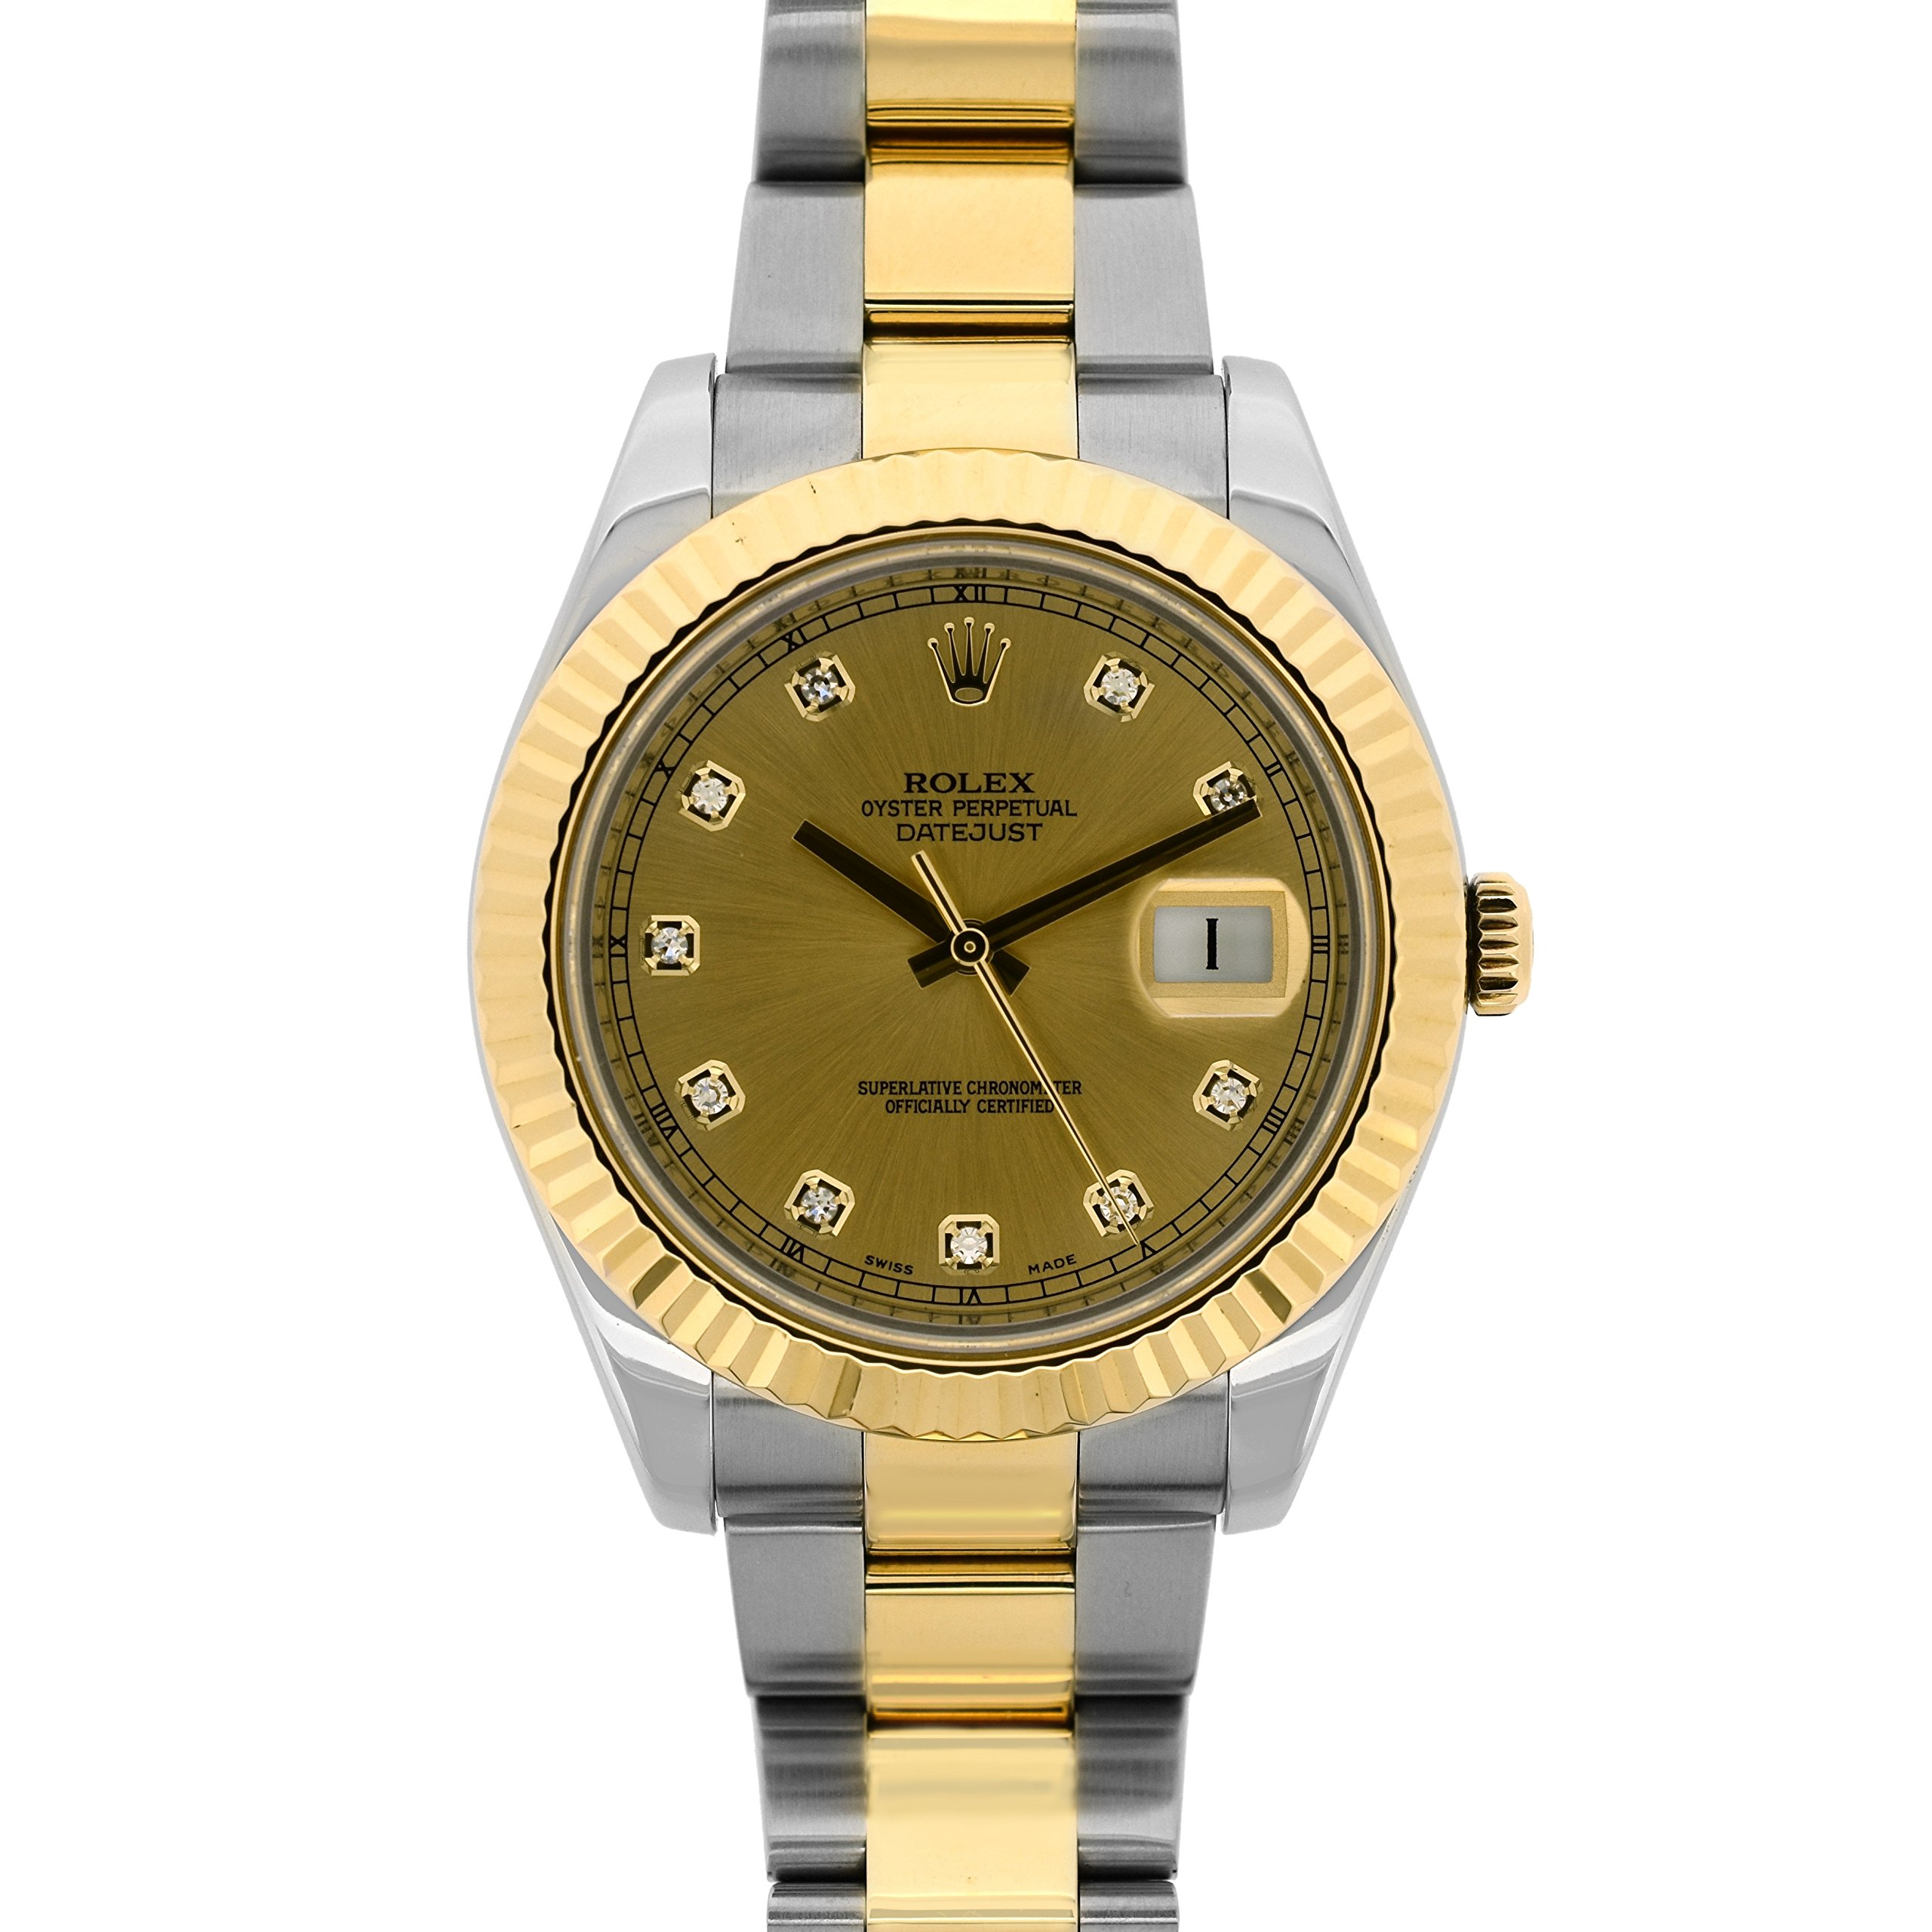 Rolex Datejust II automatic-self-wind mens Watch 116333 (Certified Pre-owned)